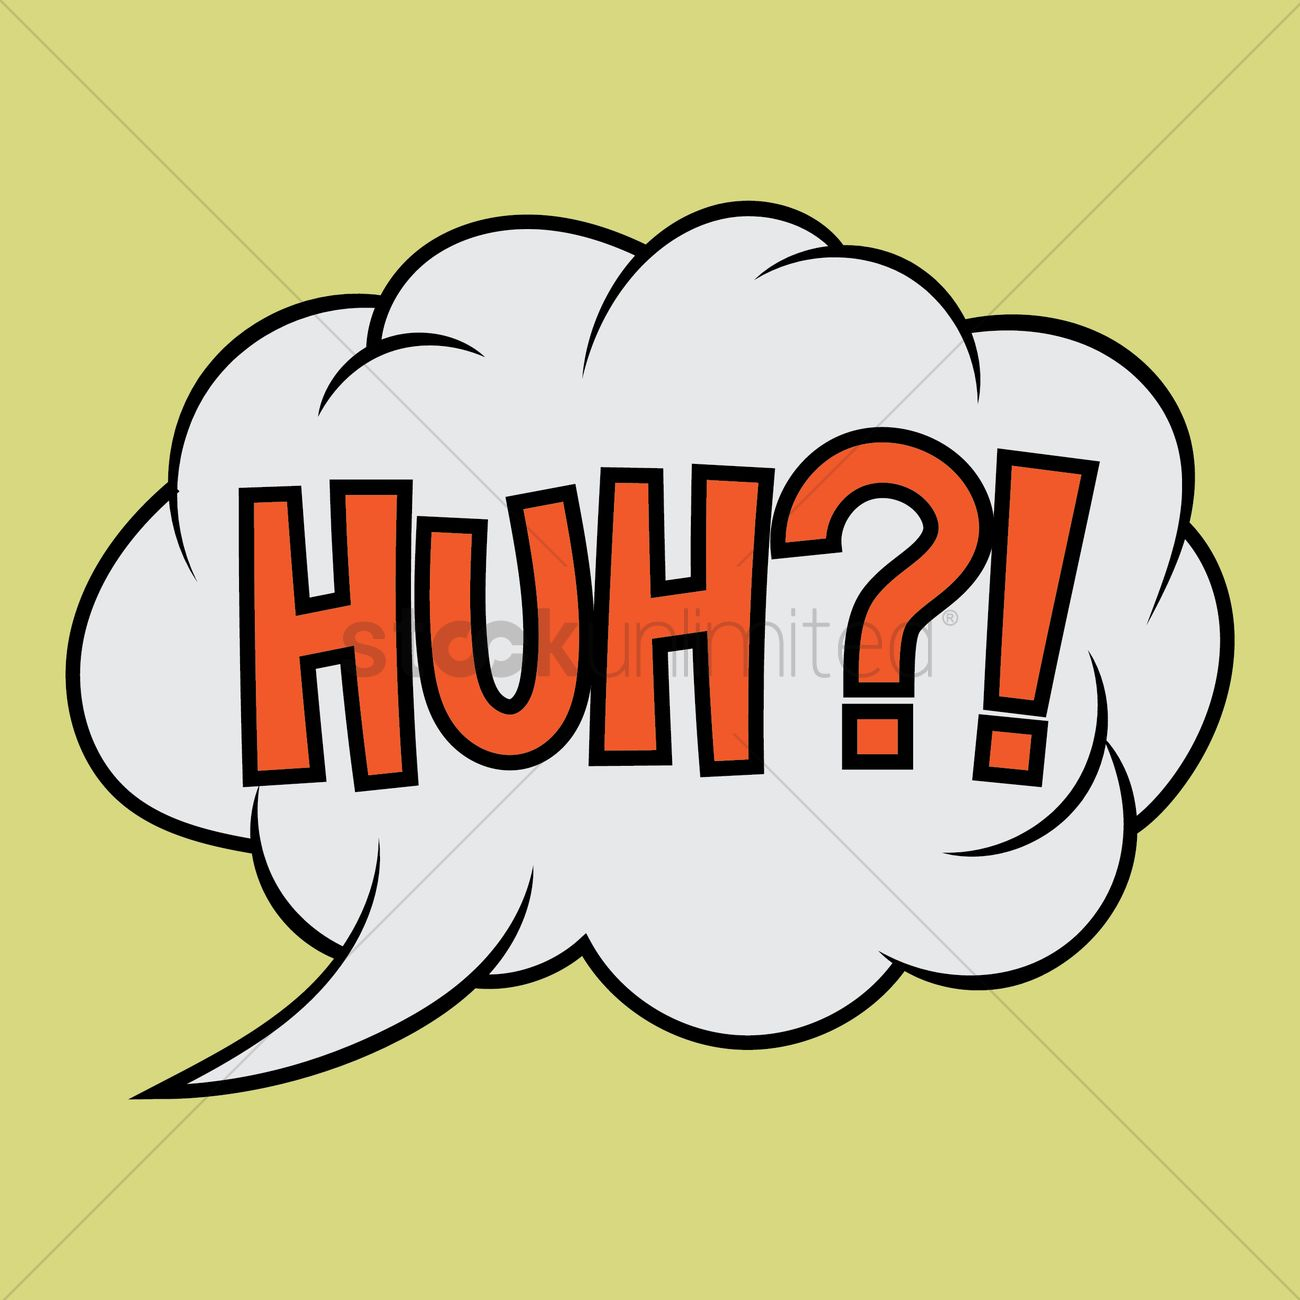 Huh text with comic effect Vector Image - 1823159 | StockUnlimited